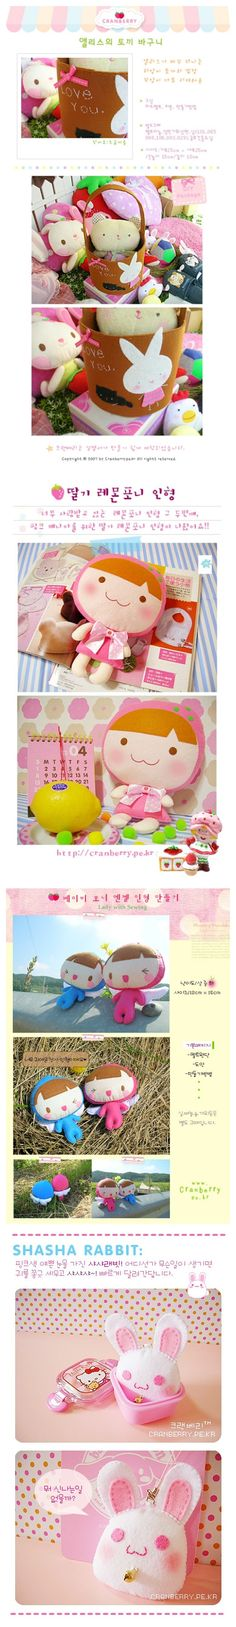 Too many cute little things are not weave picture oh ~ ~ too many packaged download address: Korea lovely style collection RM package to download